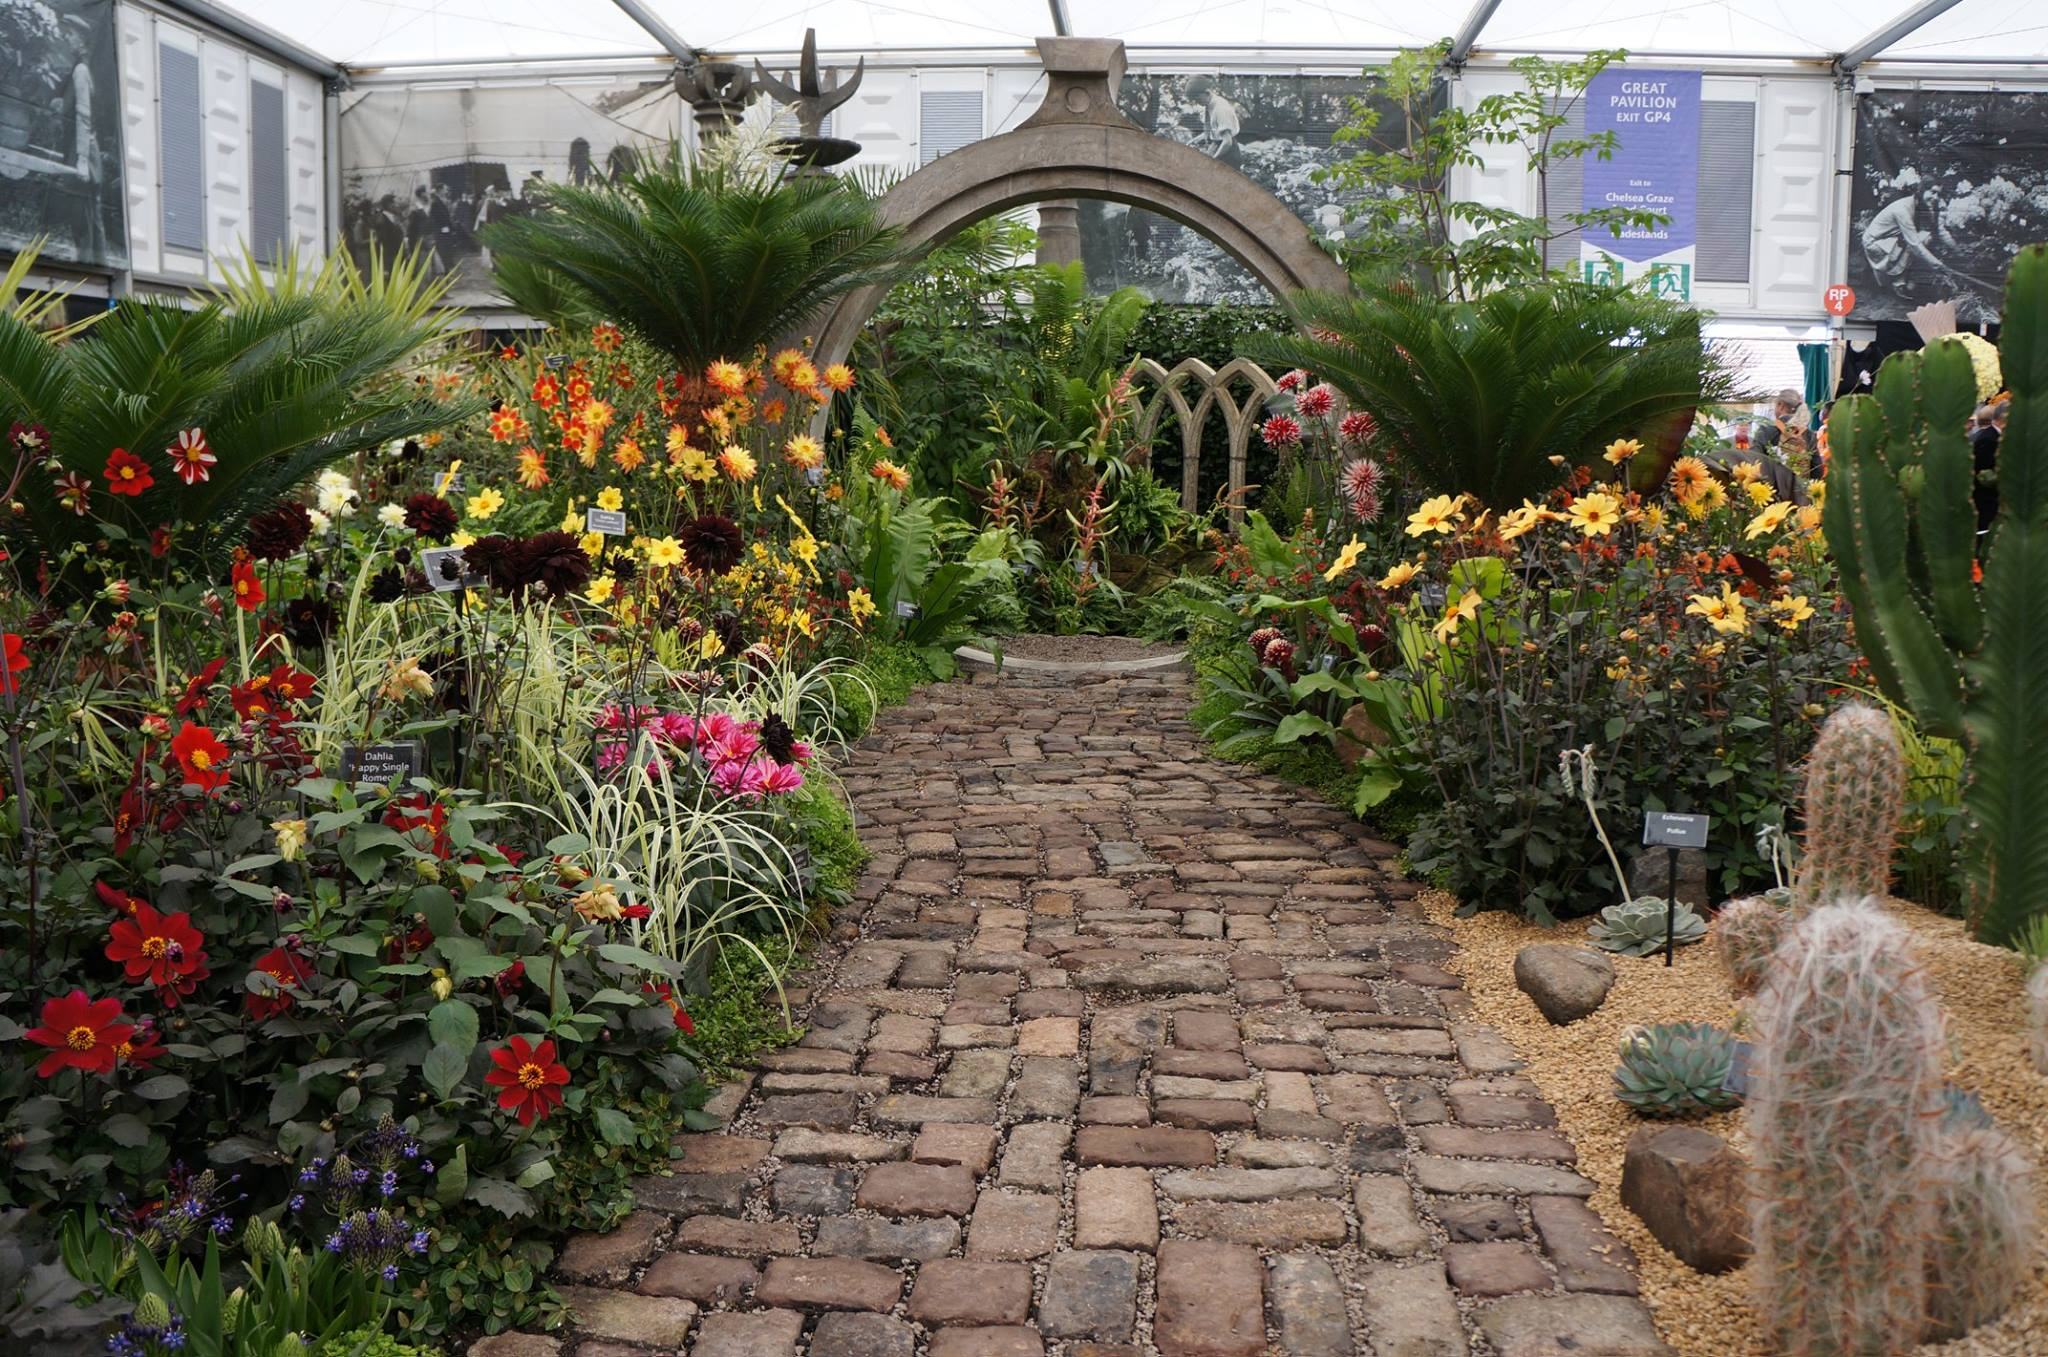 Jard n surrealista mexicano gana oro en el chelsea flower for Jardin expo 2015 liege